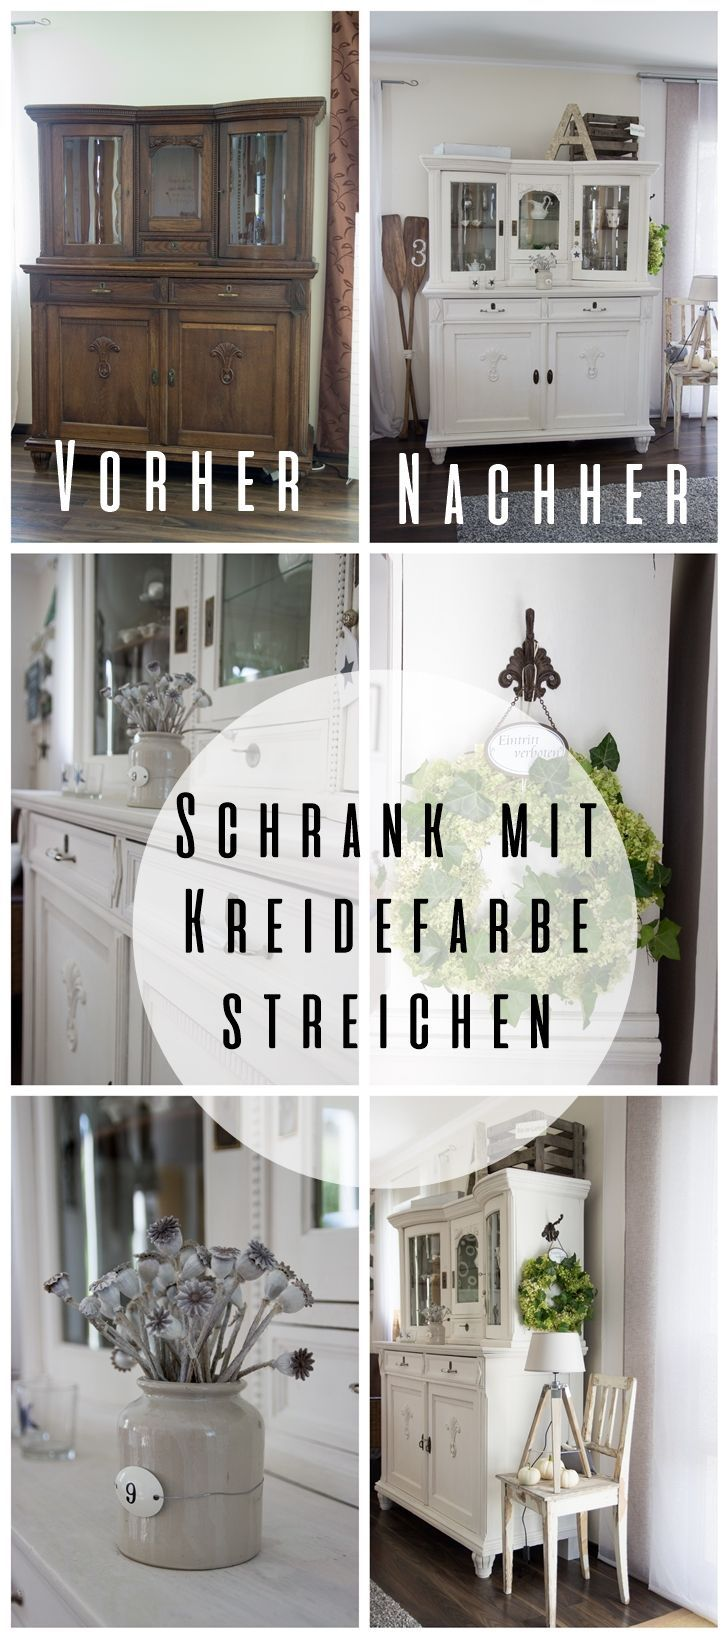 wohnzimmer schrank mit kreidefarbe gestrichen wohnen pinterest kreidefarbe schr nkchen. Black Bedroom Furniture Sets. Home Design Ideas